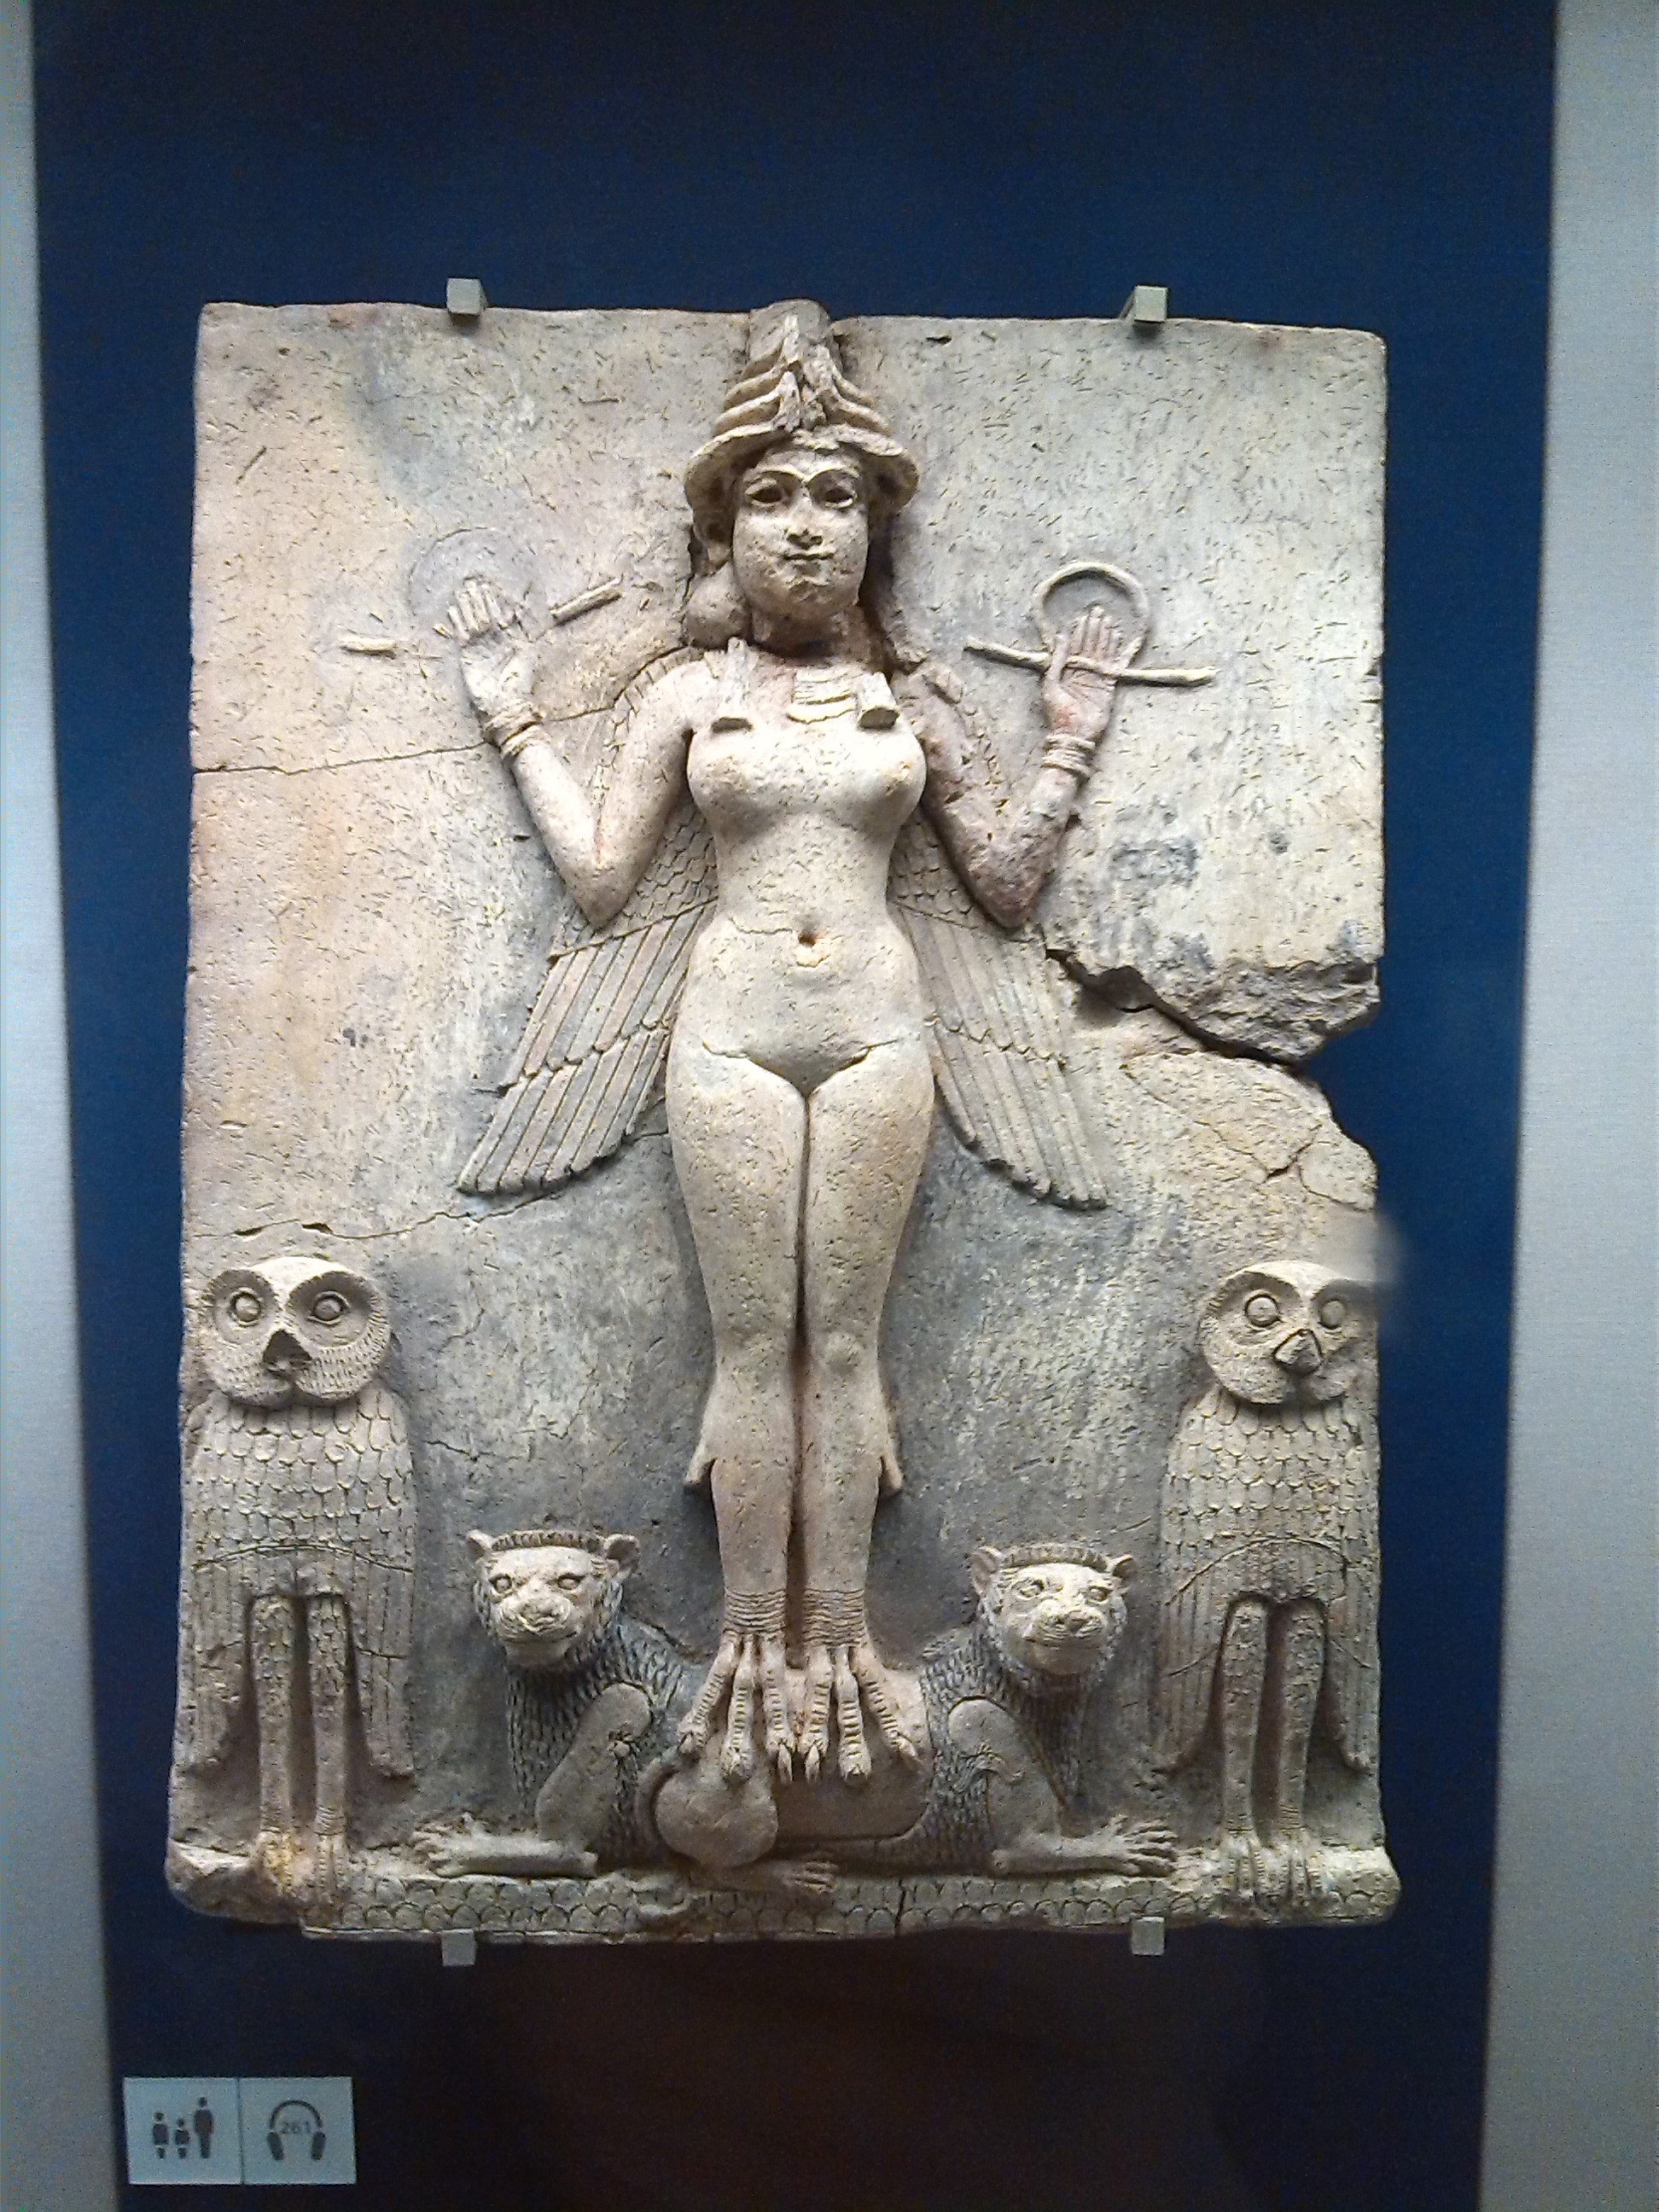 Image: 'Queen of the Night' relief believed to represent Inanna's night flight - rising from the Underworld or as the star or Venus through the sky, as bird-woman with wings. (Image my own) from British Museum collection.